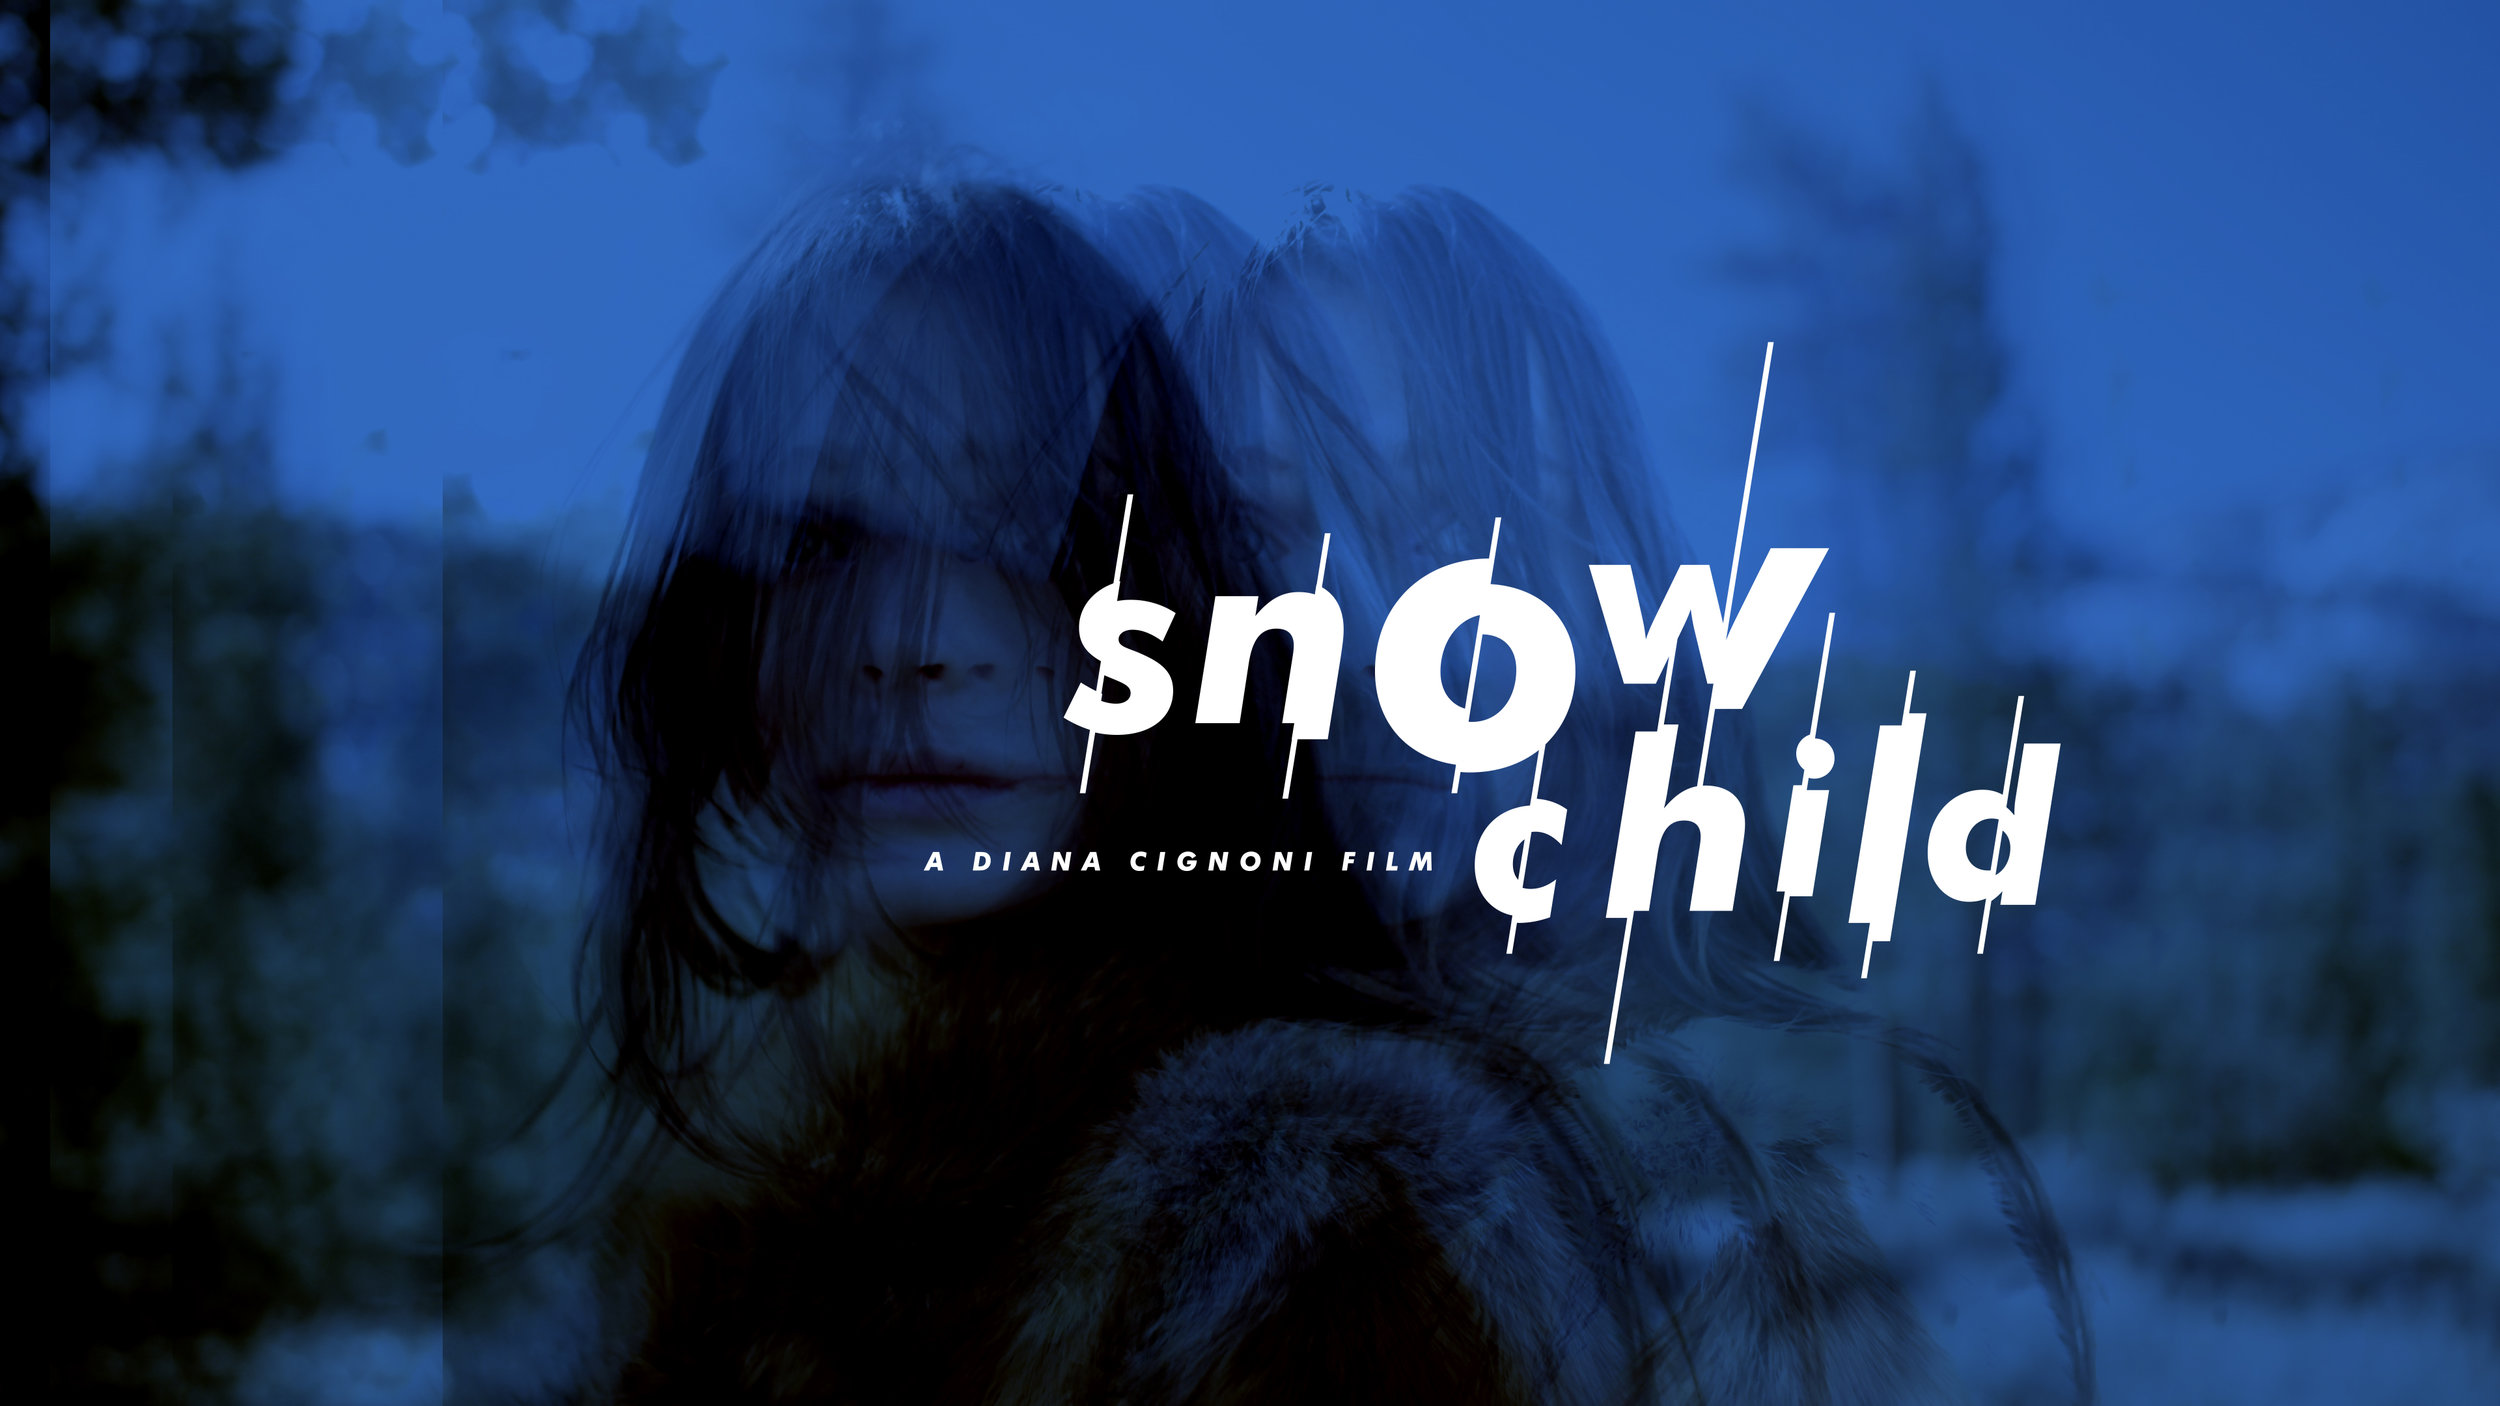 SNOW CHILD   by Diana Cignoni  | 11:55 | A young girl witnesses the death of her father and submerges herself in the unseen world, her subconsciousness and the human psyche and finds her neutral space that comforts her grief and guilt. The unseen becomes seen.